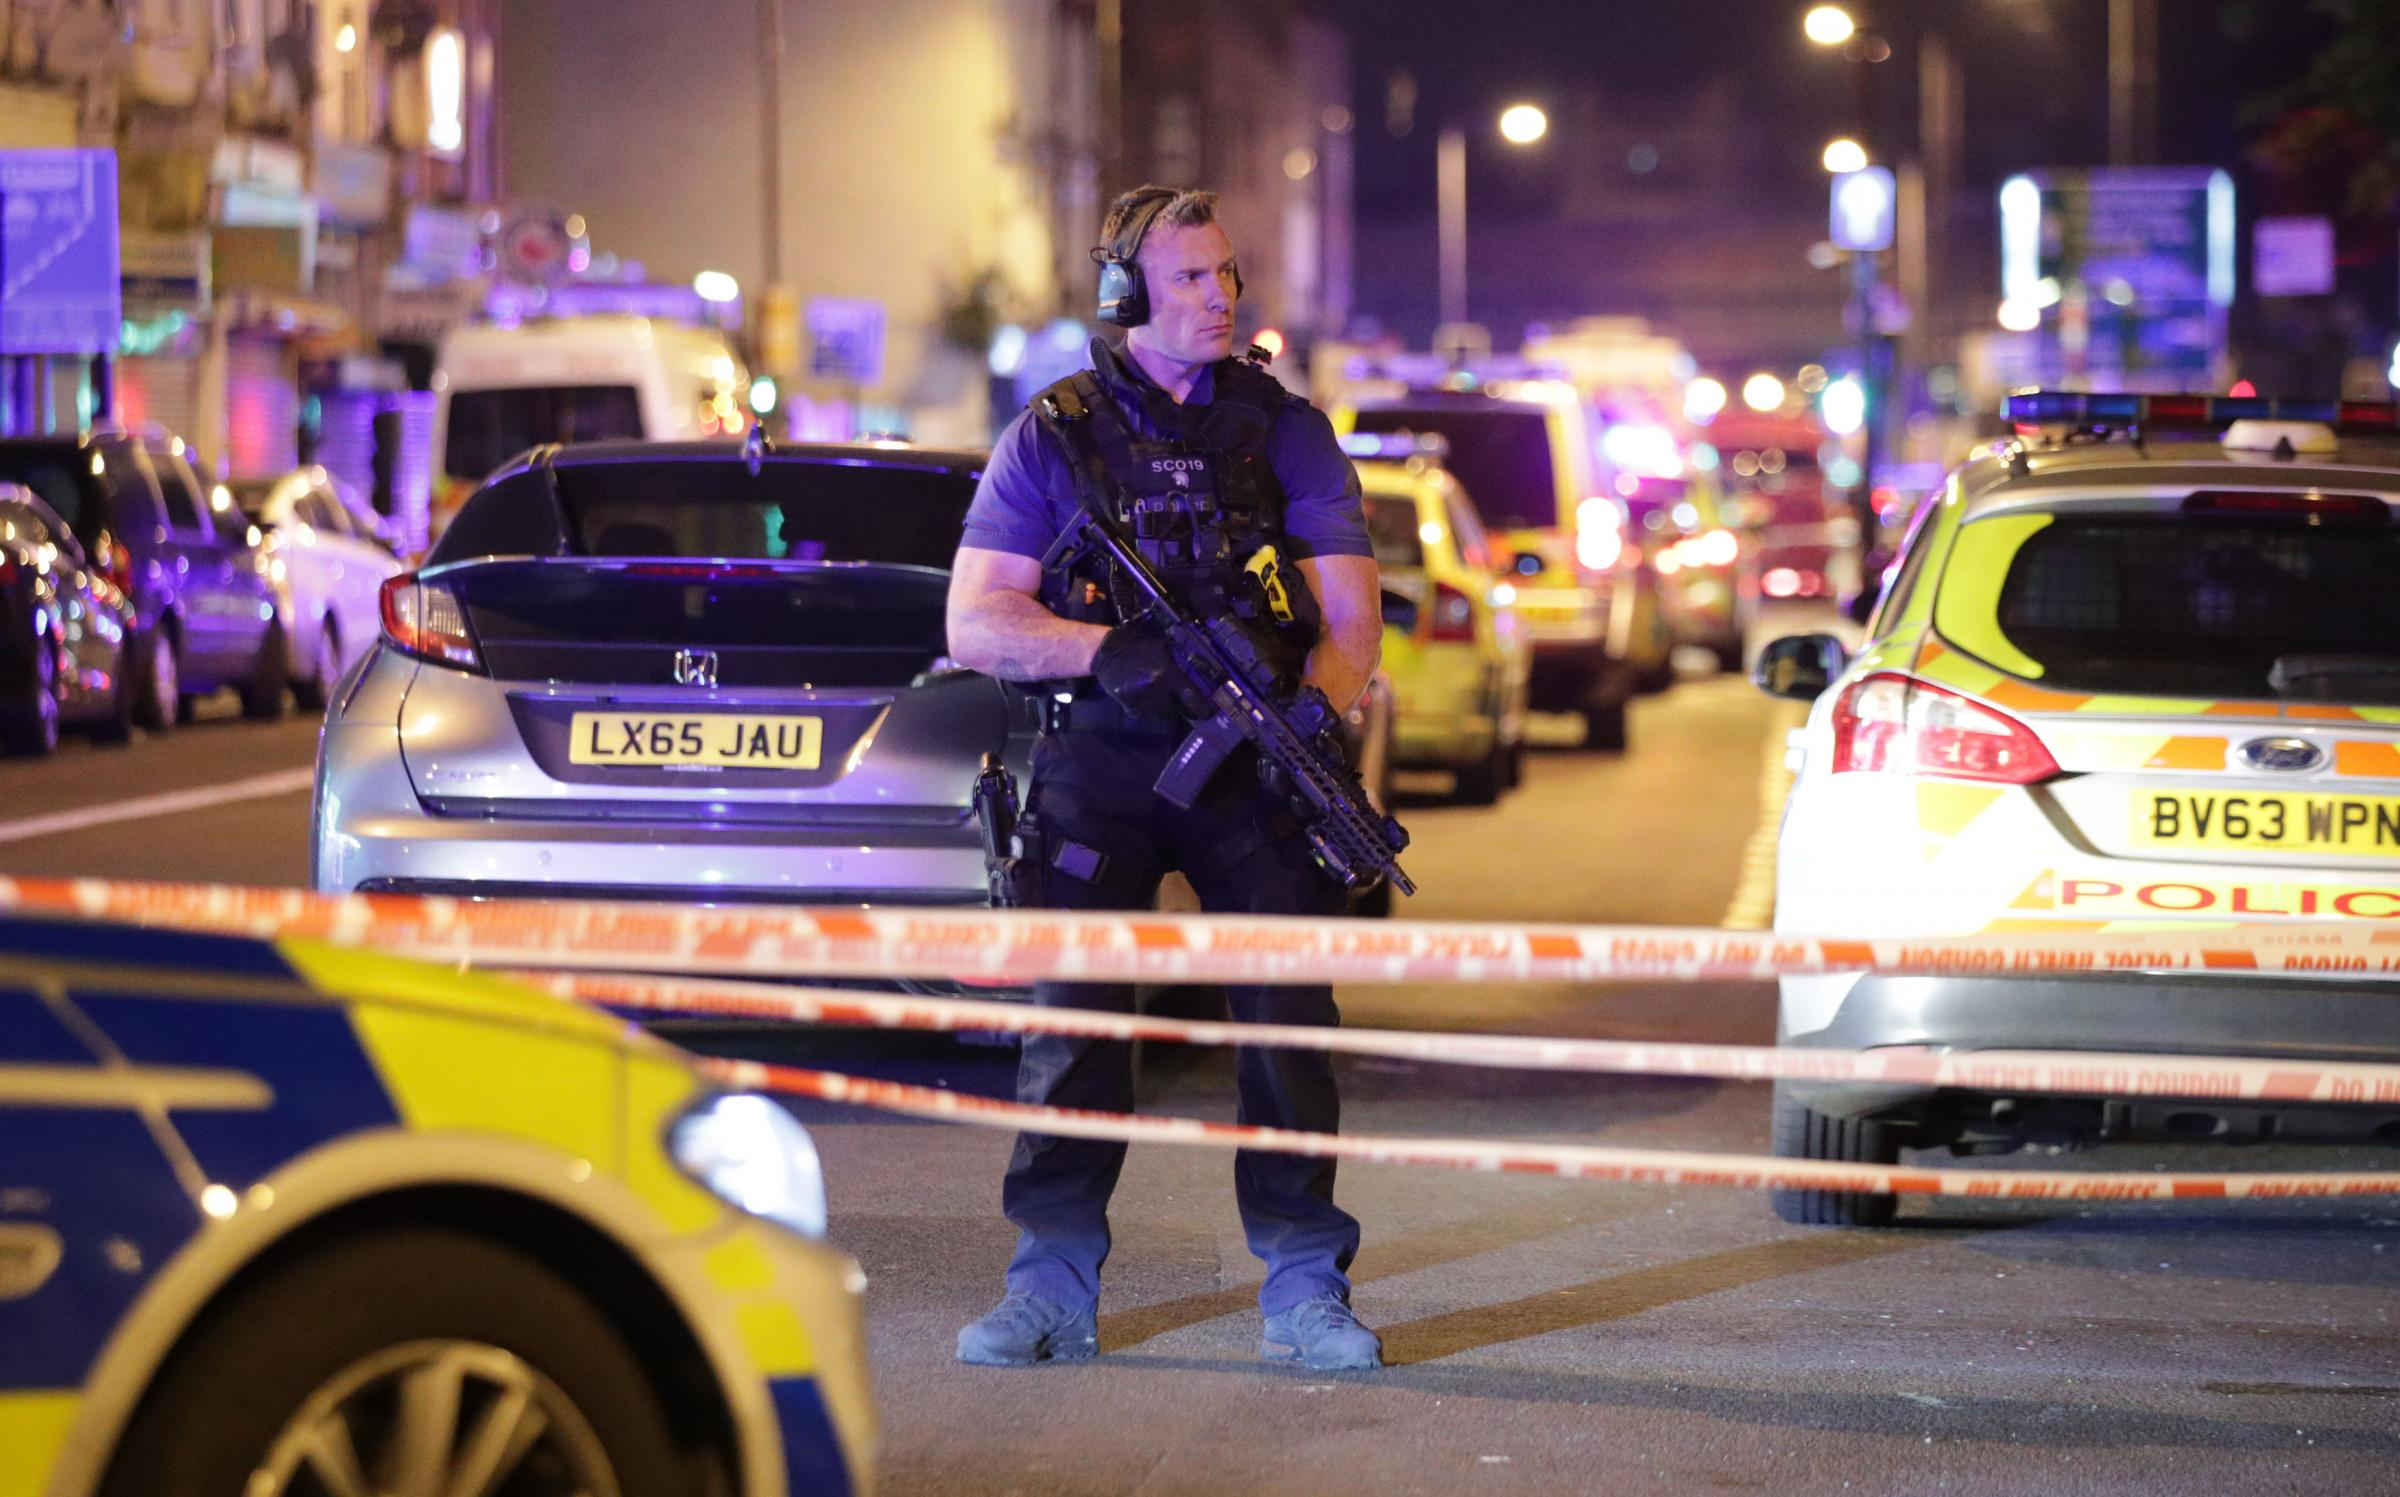 Muslim Council of Britain calls London attack violent manifestation of Islamophobia